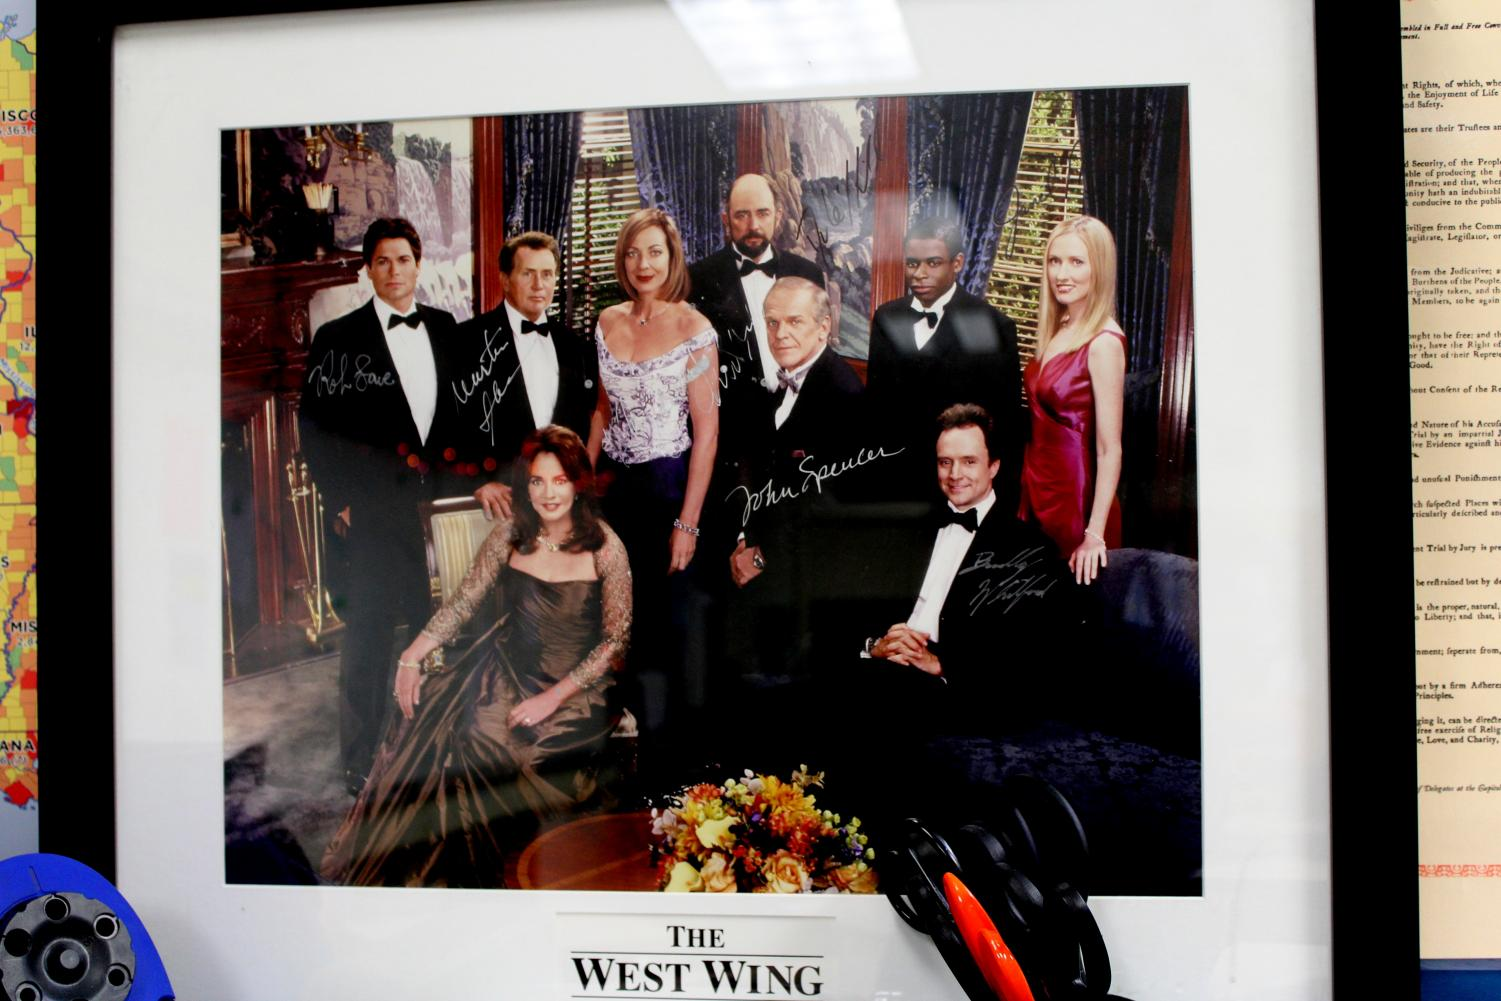 %E2%80%9C%E2%80%98West+Wing%E2%80%99+is+like+the+best+TV+show+ever%2C+and+then+a+student+of+mine+one+year+went+to+Goodwill%2C+and+they+were+selling+it.+So+on+the+back%2C+I+made+him+sign+it+for+me.+He+brought+it+in+one+day+and+had+paid+like+three+bucks+for+it.%E2%80%9D+-Christy+Heaton